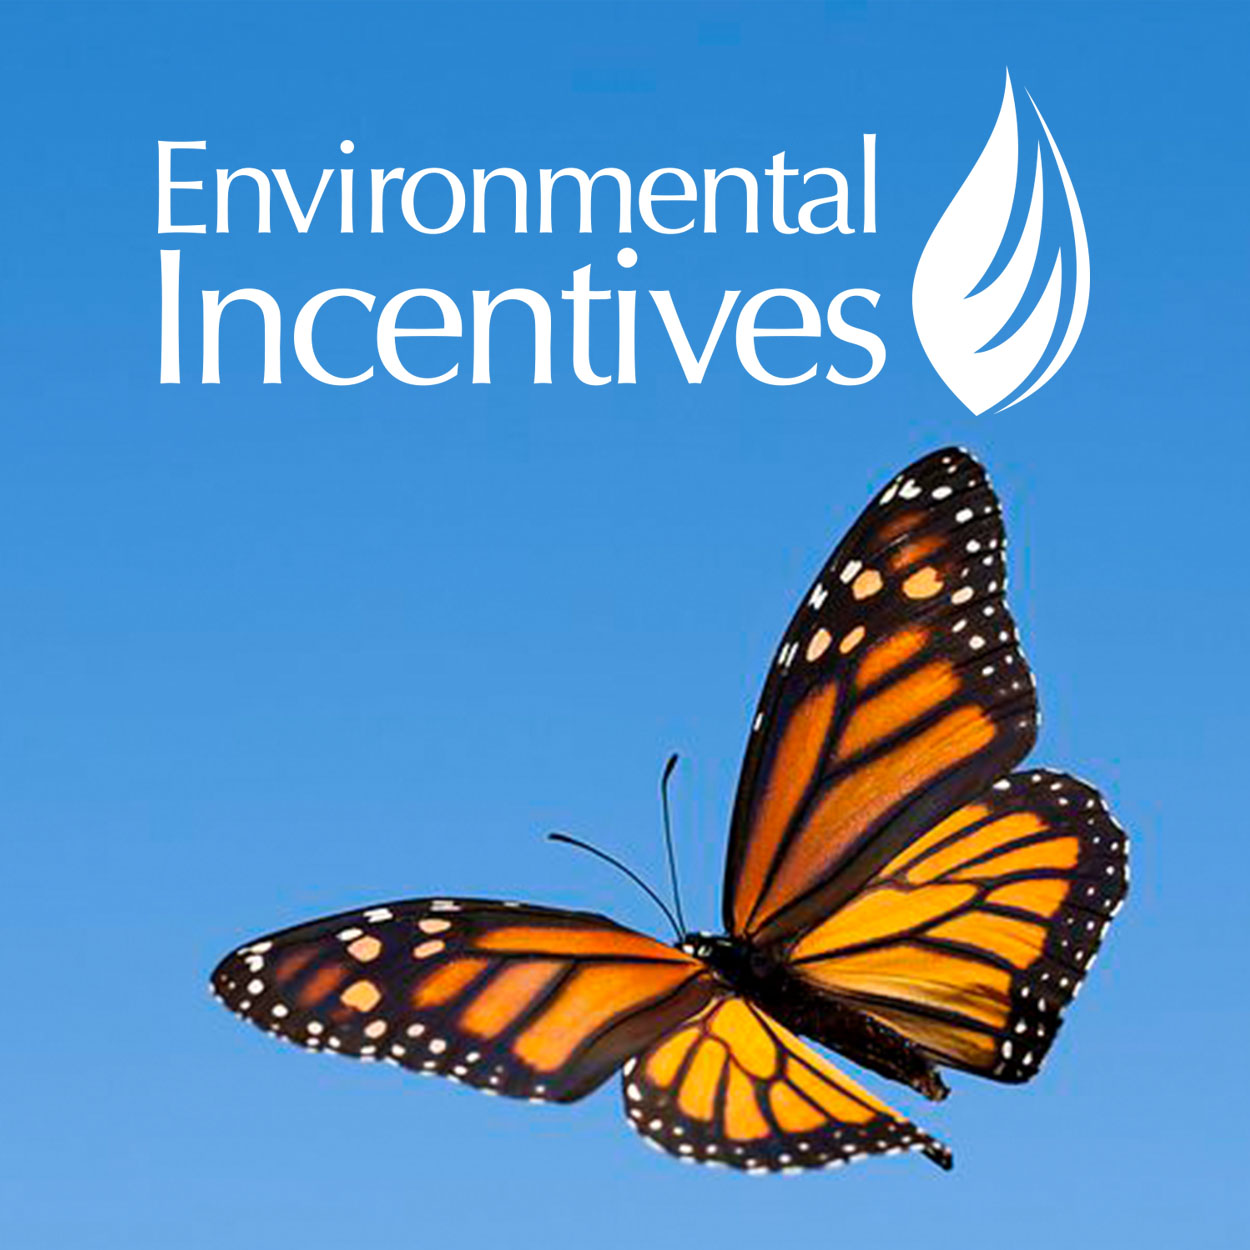 Environmental Incentives | UX Design   The monarch butterfly population has plummeted by 70% in the past 2 decades. I worked with Environmental Incentives to figure out how technology can help reverse the endangerment of this species.